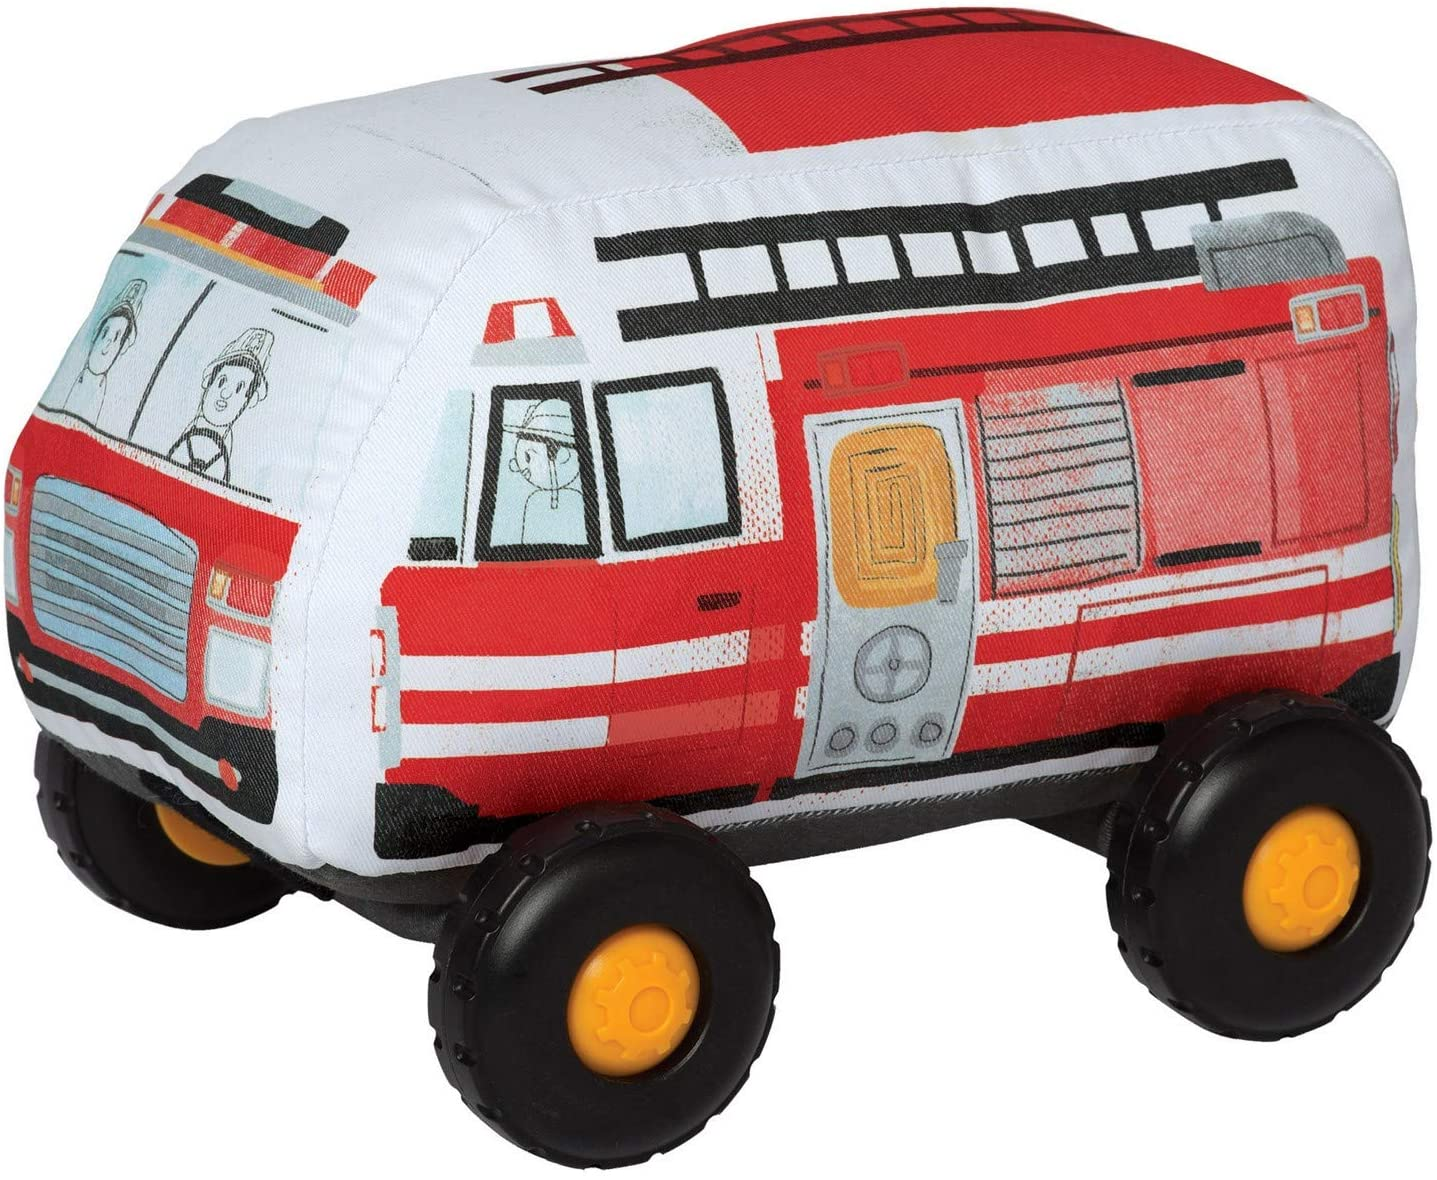 Manhattan Toy Bumpers Firetruck Toy Vehicle for Toddlers